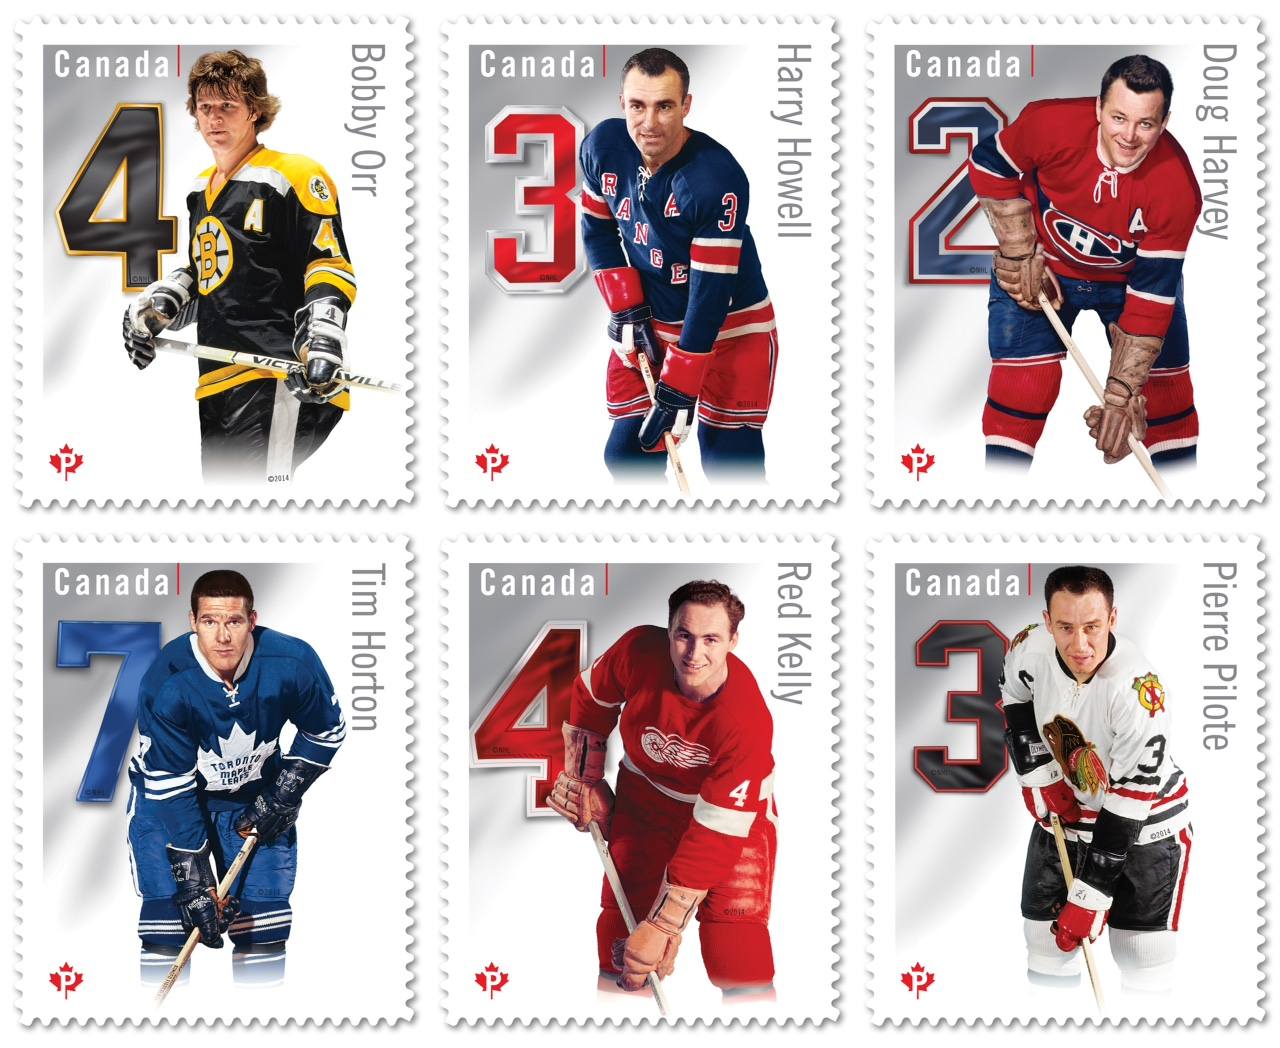 "national hockey league paper essay National hockey league and fans essay example april 5th 2012 why the national hockey league is losing money the national hockey league, otherwise known as ""the nhl"", was at one point one of the biggest grossing sports leagues in the entire world according to forbescom."